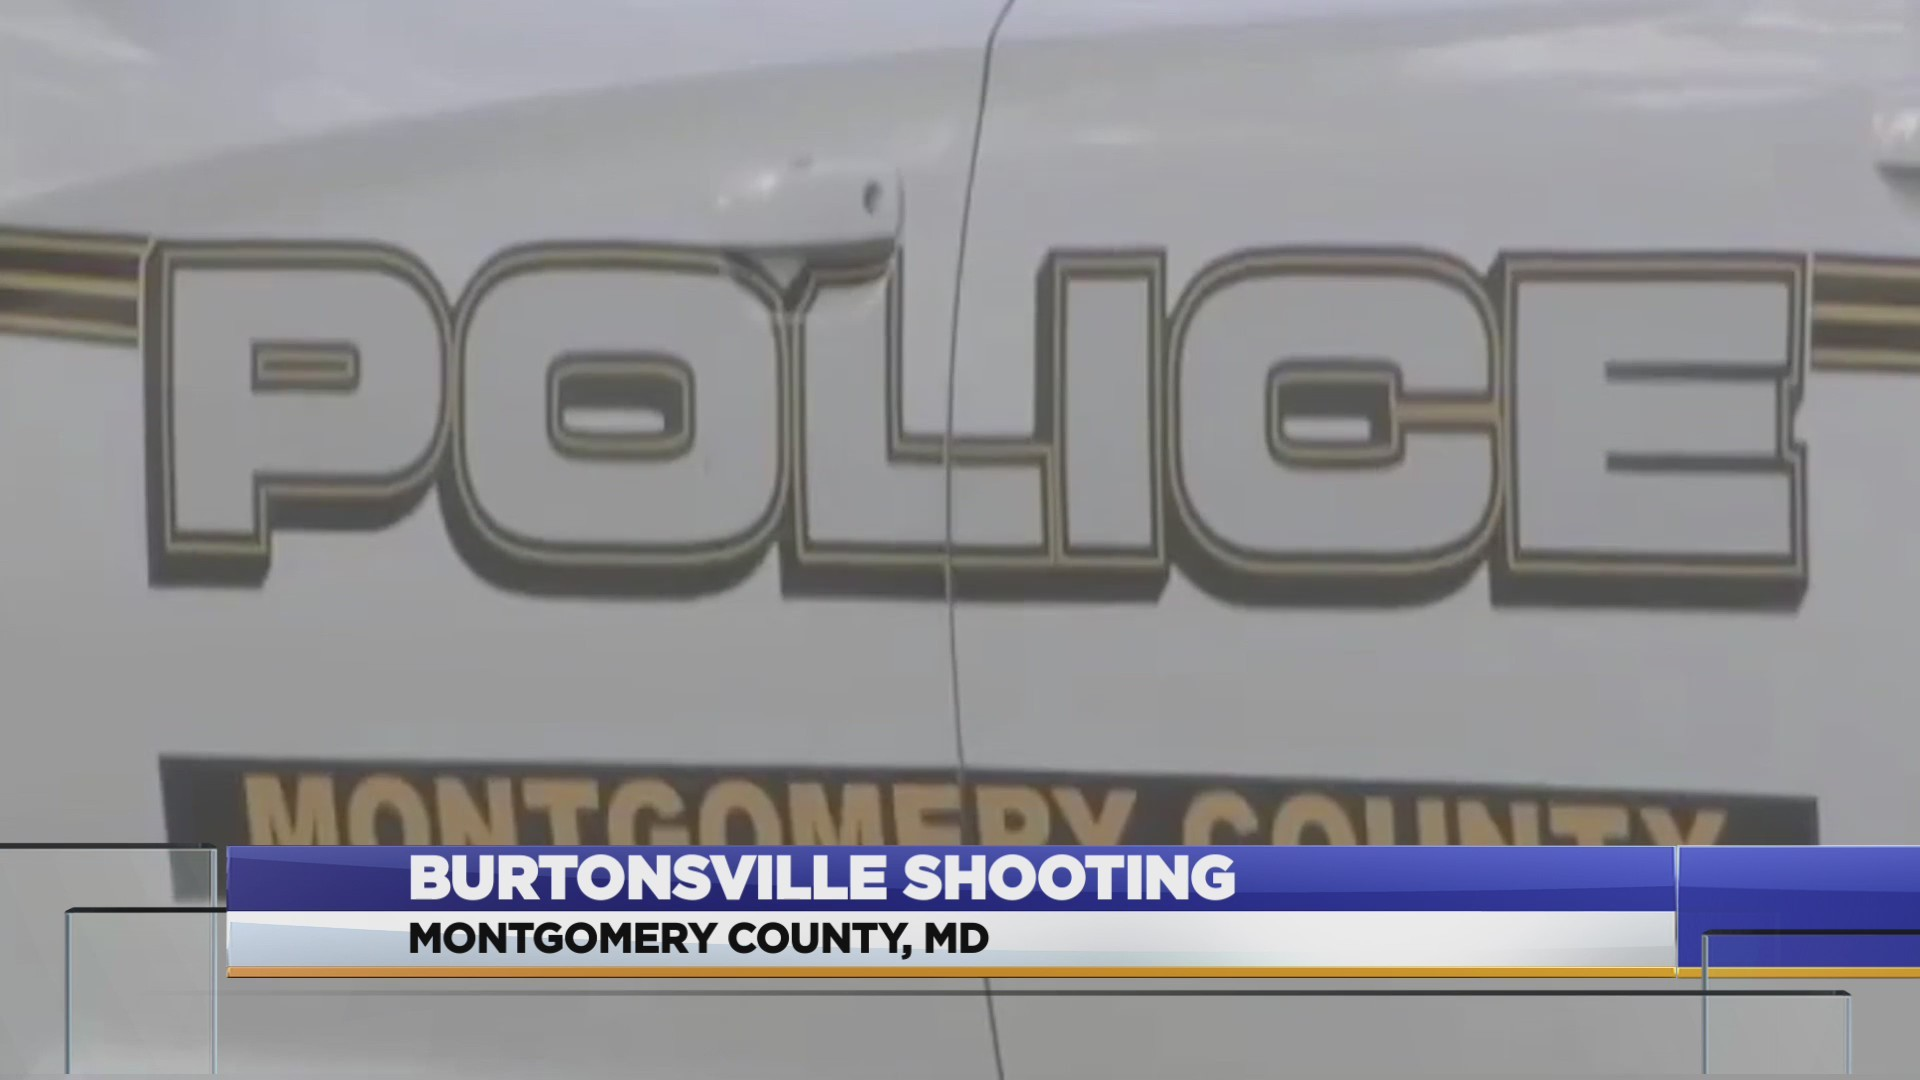 Montgomery County Police investigate shooting at traffic light